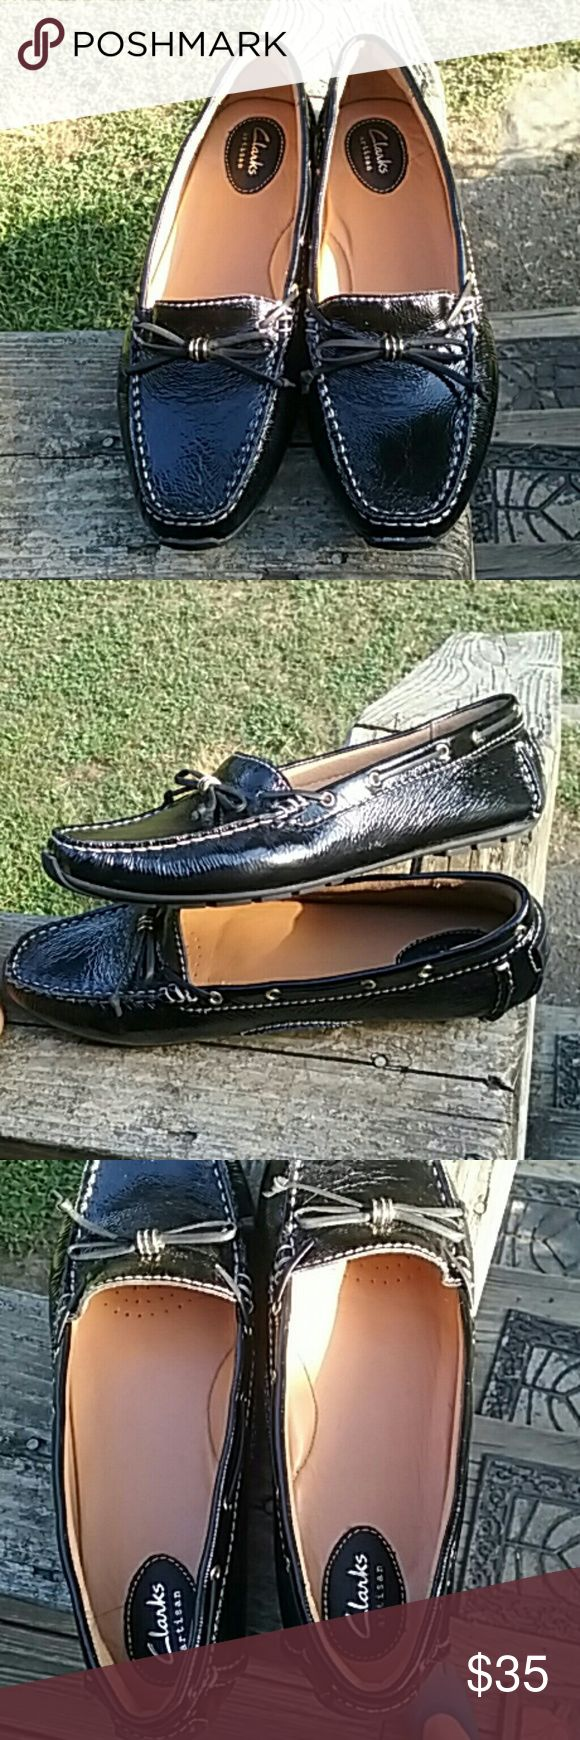 (NWOT) Clarks artisan casual shoes Women 's  Clarks, Dunbar Groove Slip on shoe Clarks  Shoes Flats & Loafers